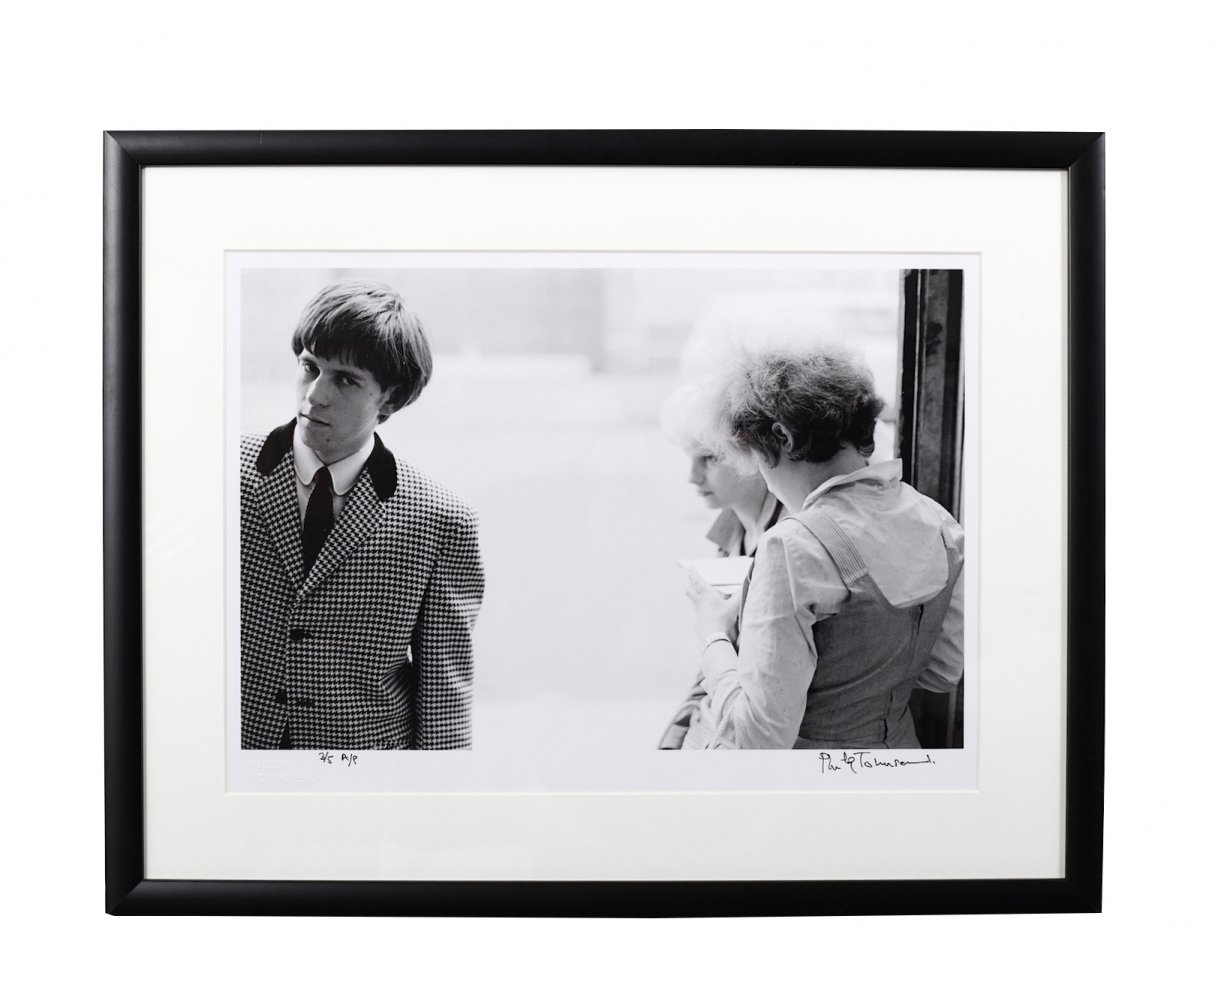 Philip Townsend (1940-2016) Keith Richards & Teddy Girls, 1963 Limited Edition